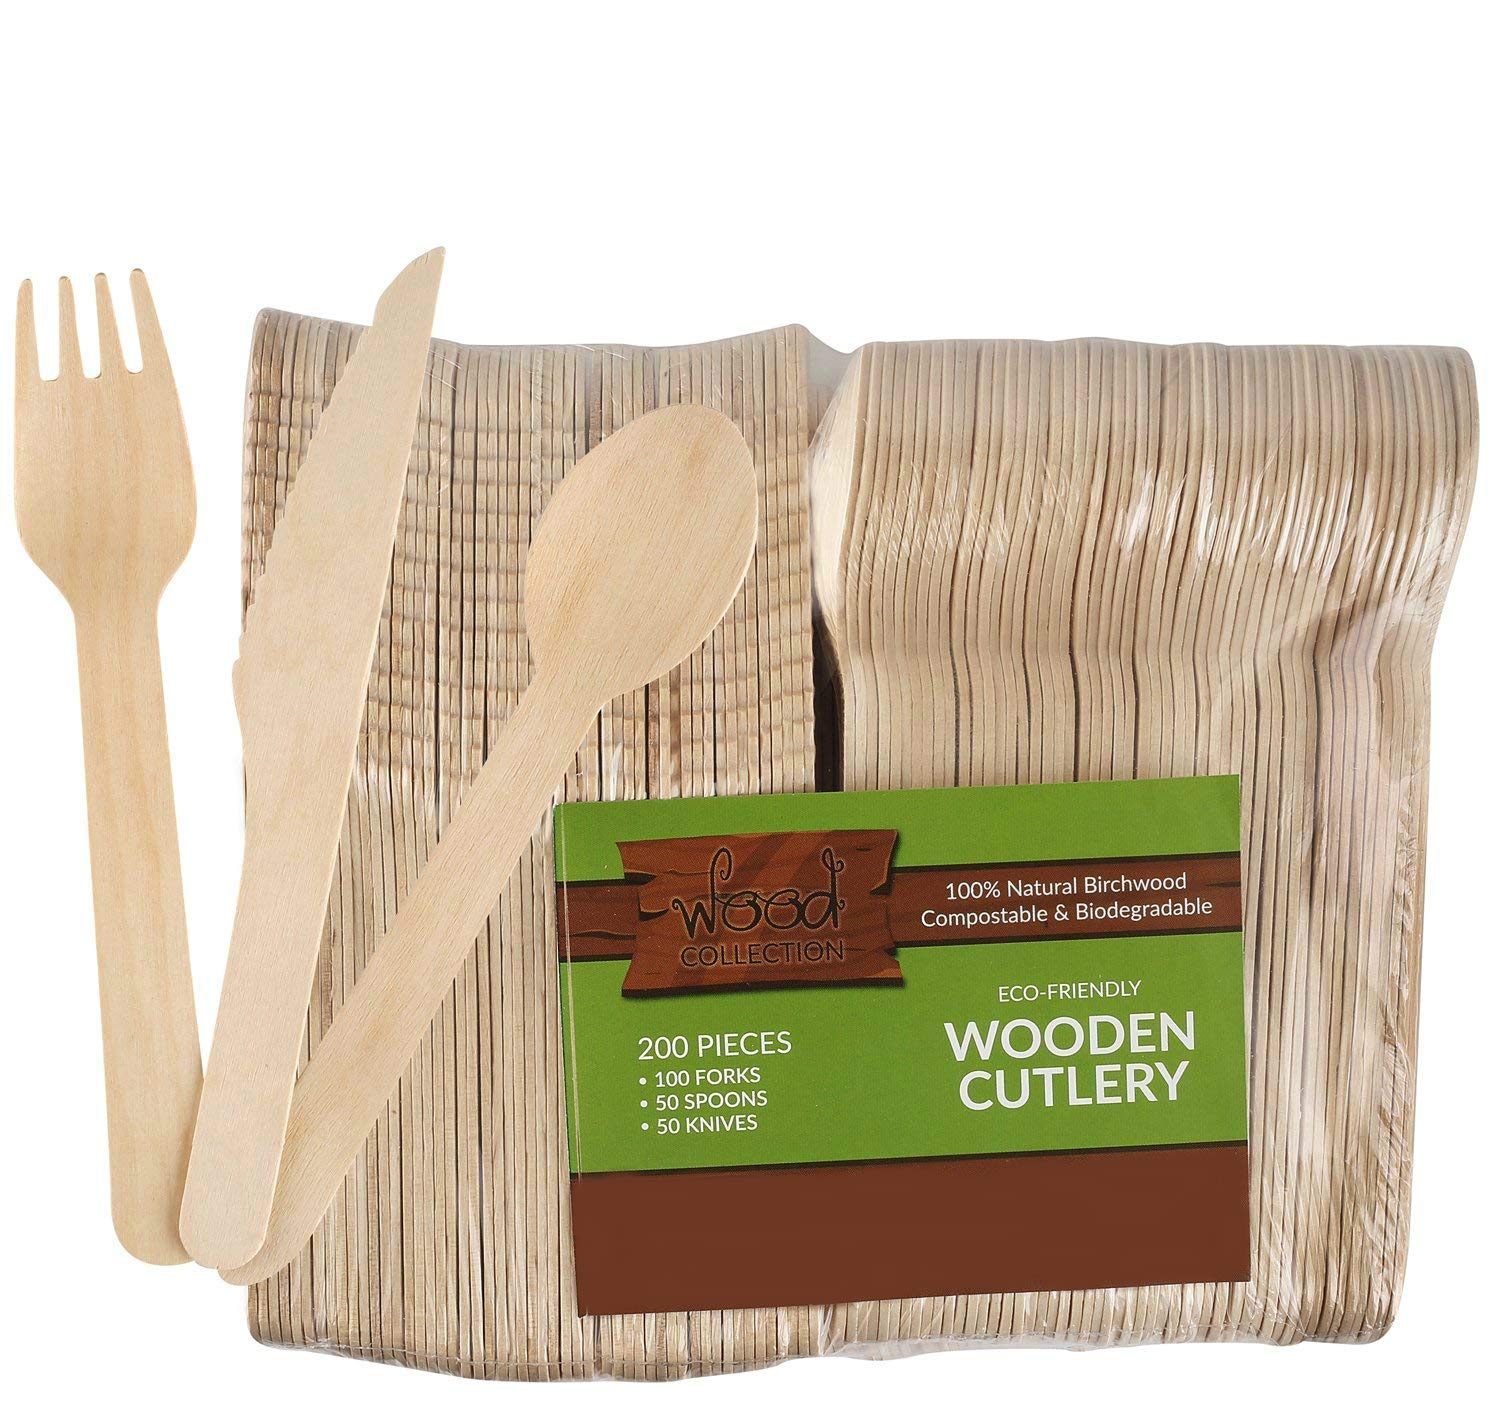 barbecues and More 100 pc Set of 6 Wooden Eco Disposable Forks- 100 Forks Packs are Compostable Biodegradable Recyclable Eco-Friendly Utensils for Parties Weddings picnics